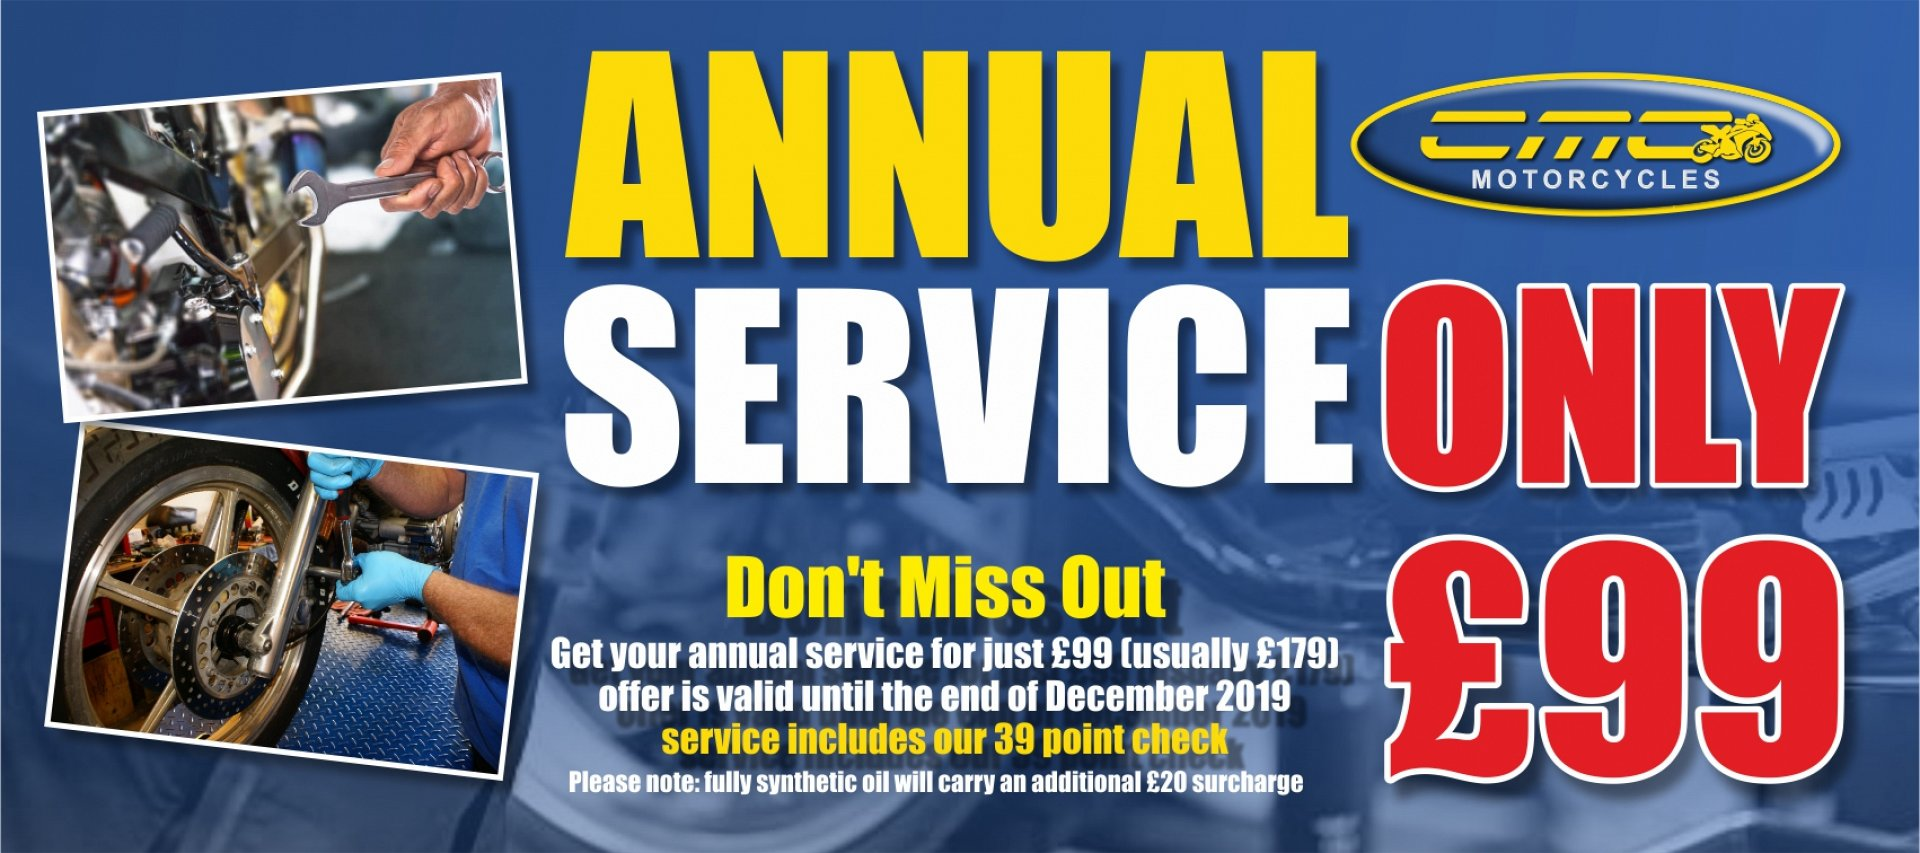 Get your Annual Service for only £99